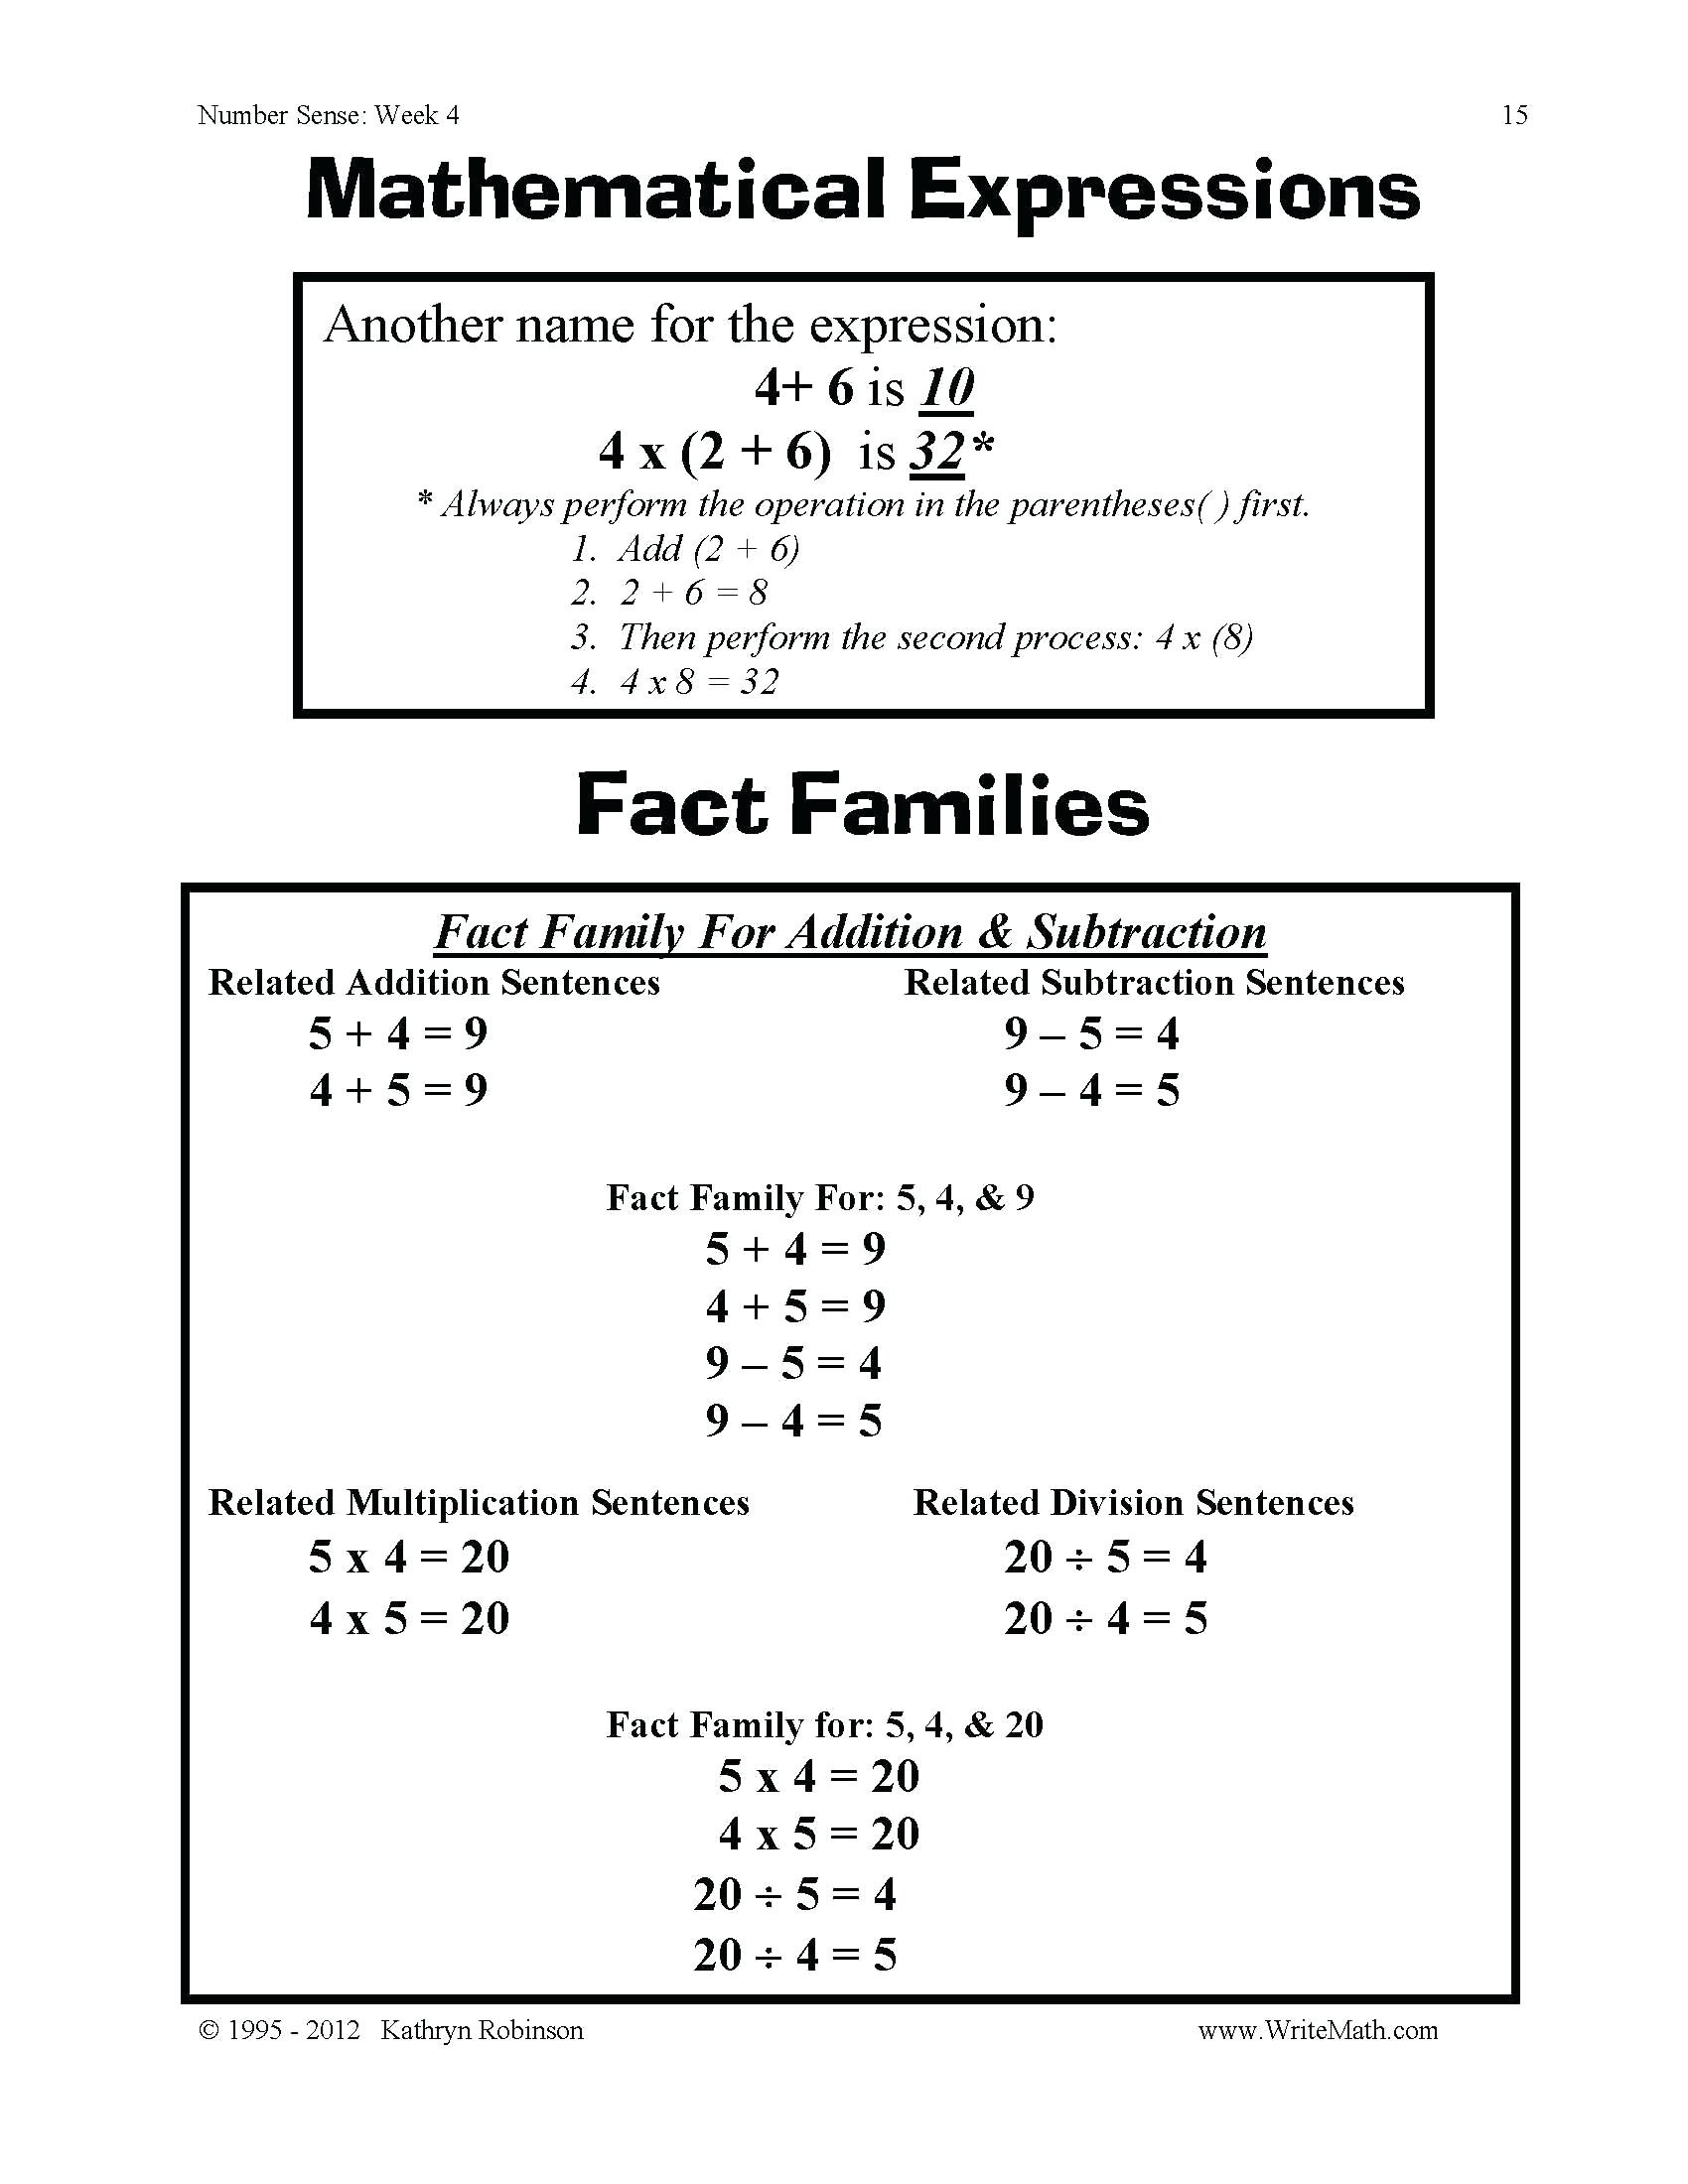 Thanksgiving Math Worksheets 5th Grade Division Worksheets 5th Grade Inspirational Collection